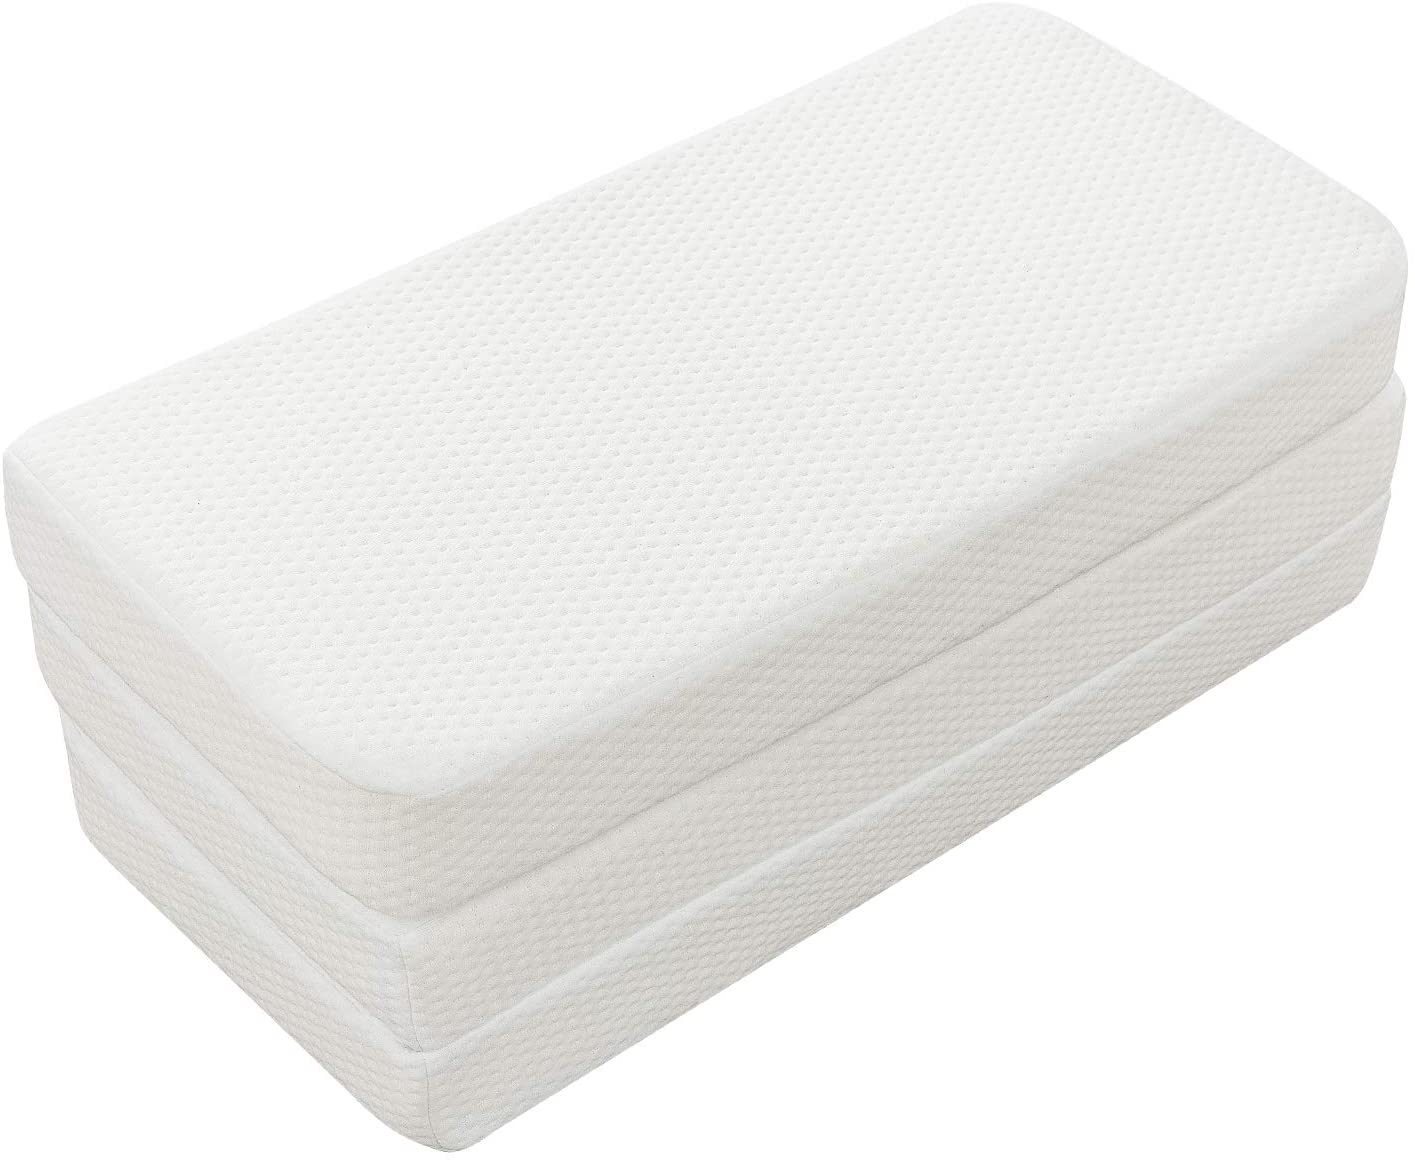 Fitted Foldable Memory Foam Pack n Play Mattress Pad